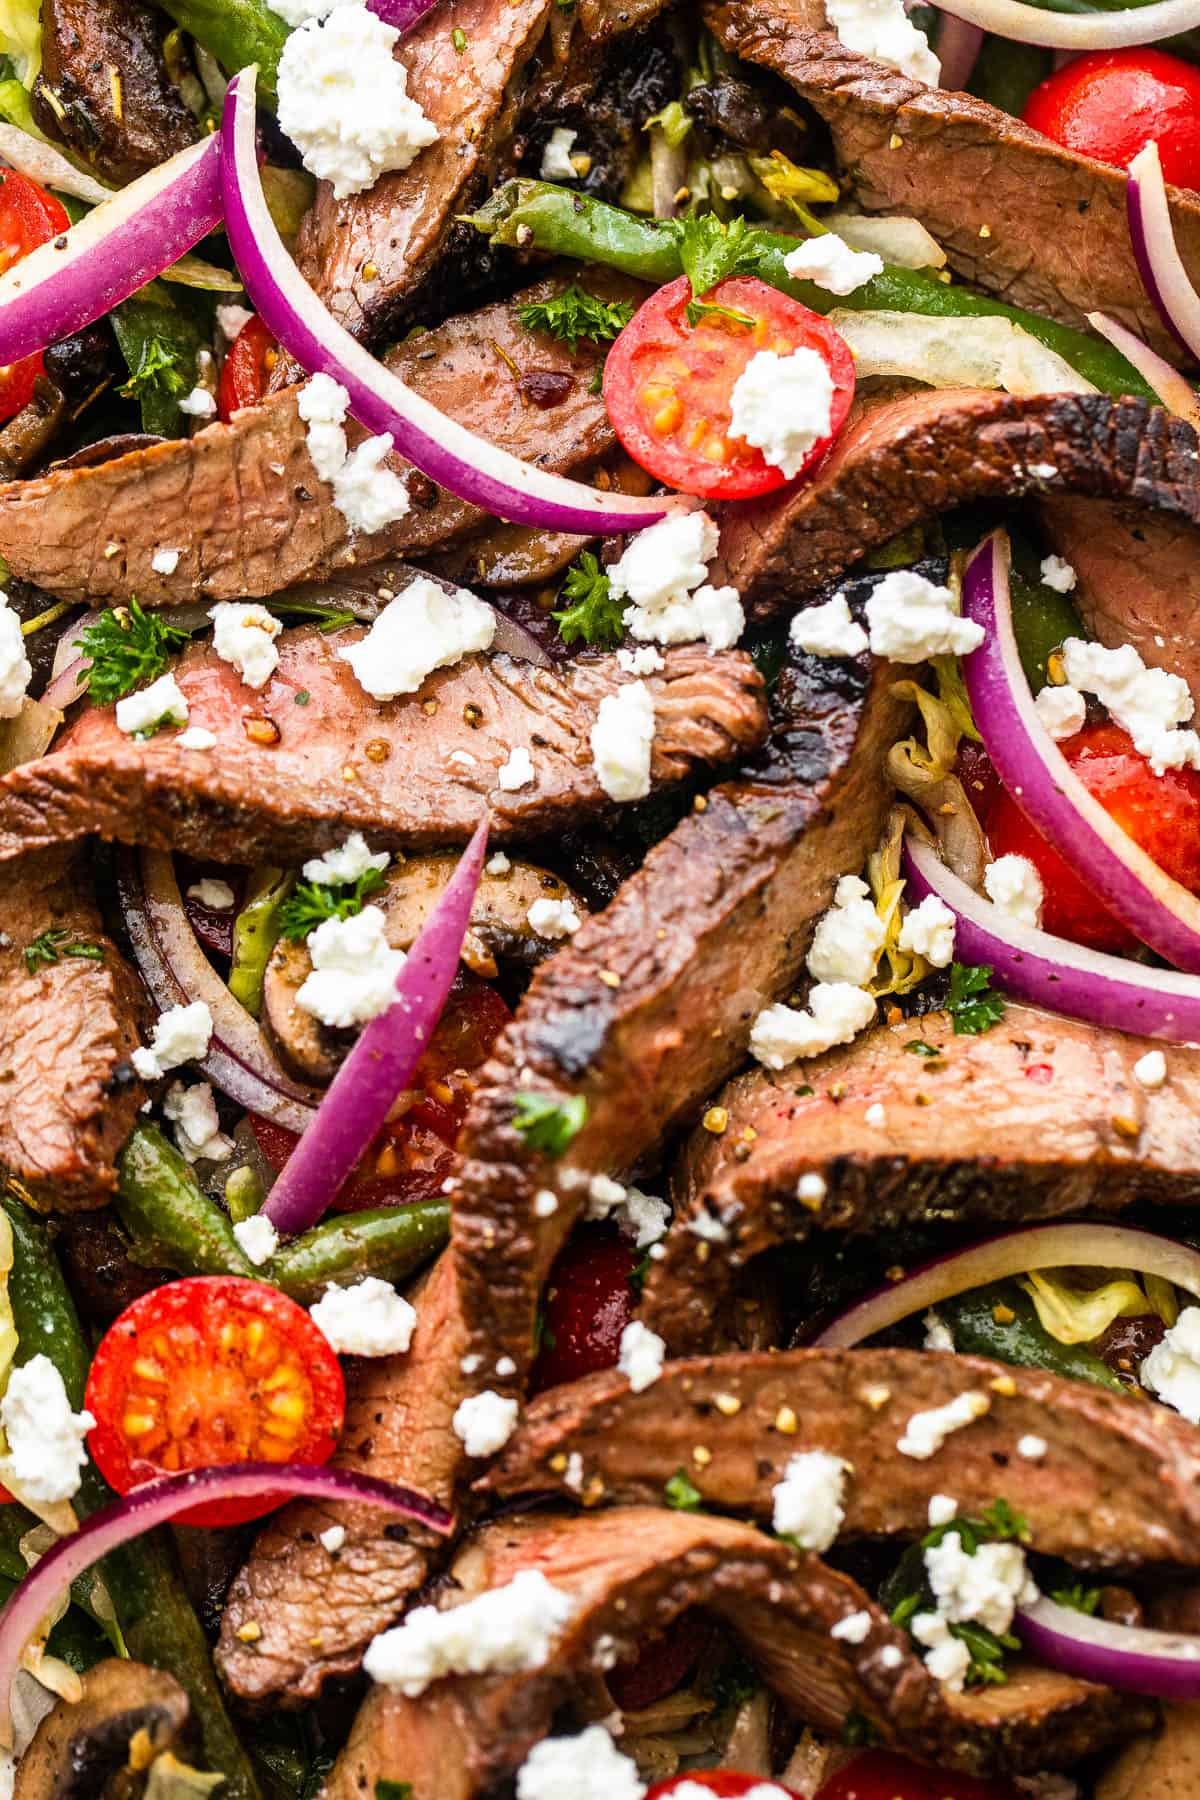 up close photo of Steak Salad on a long plate topped with cheese crumbles, tomatoes, and mushrooms